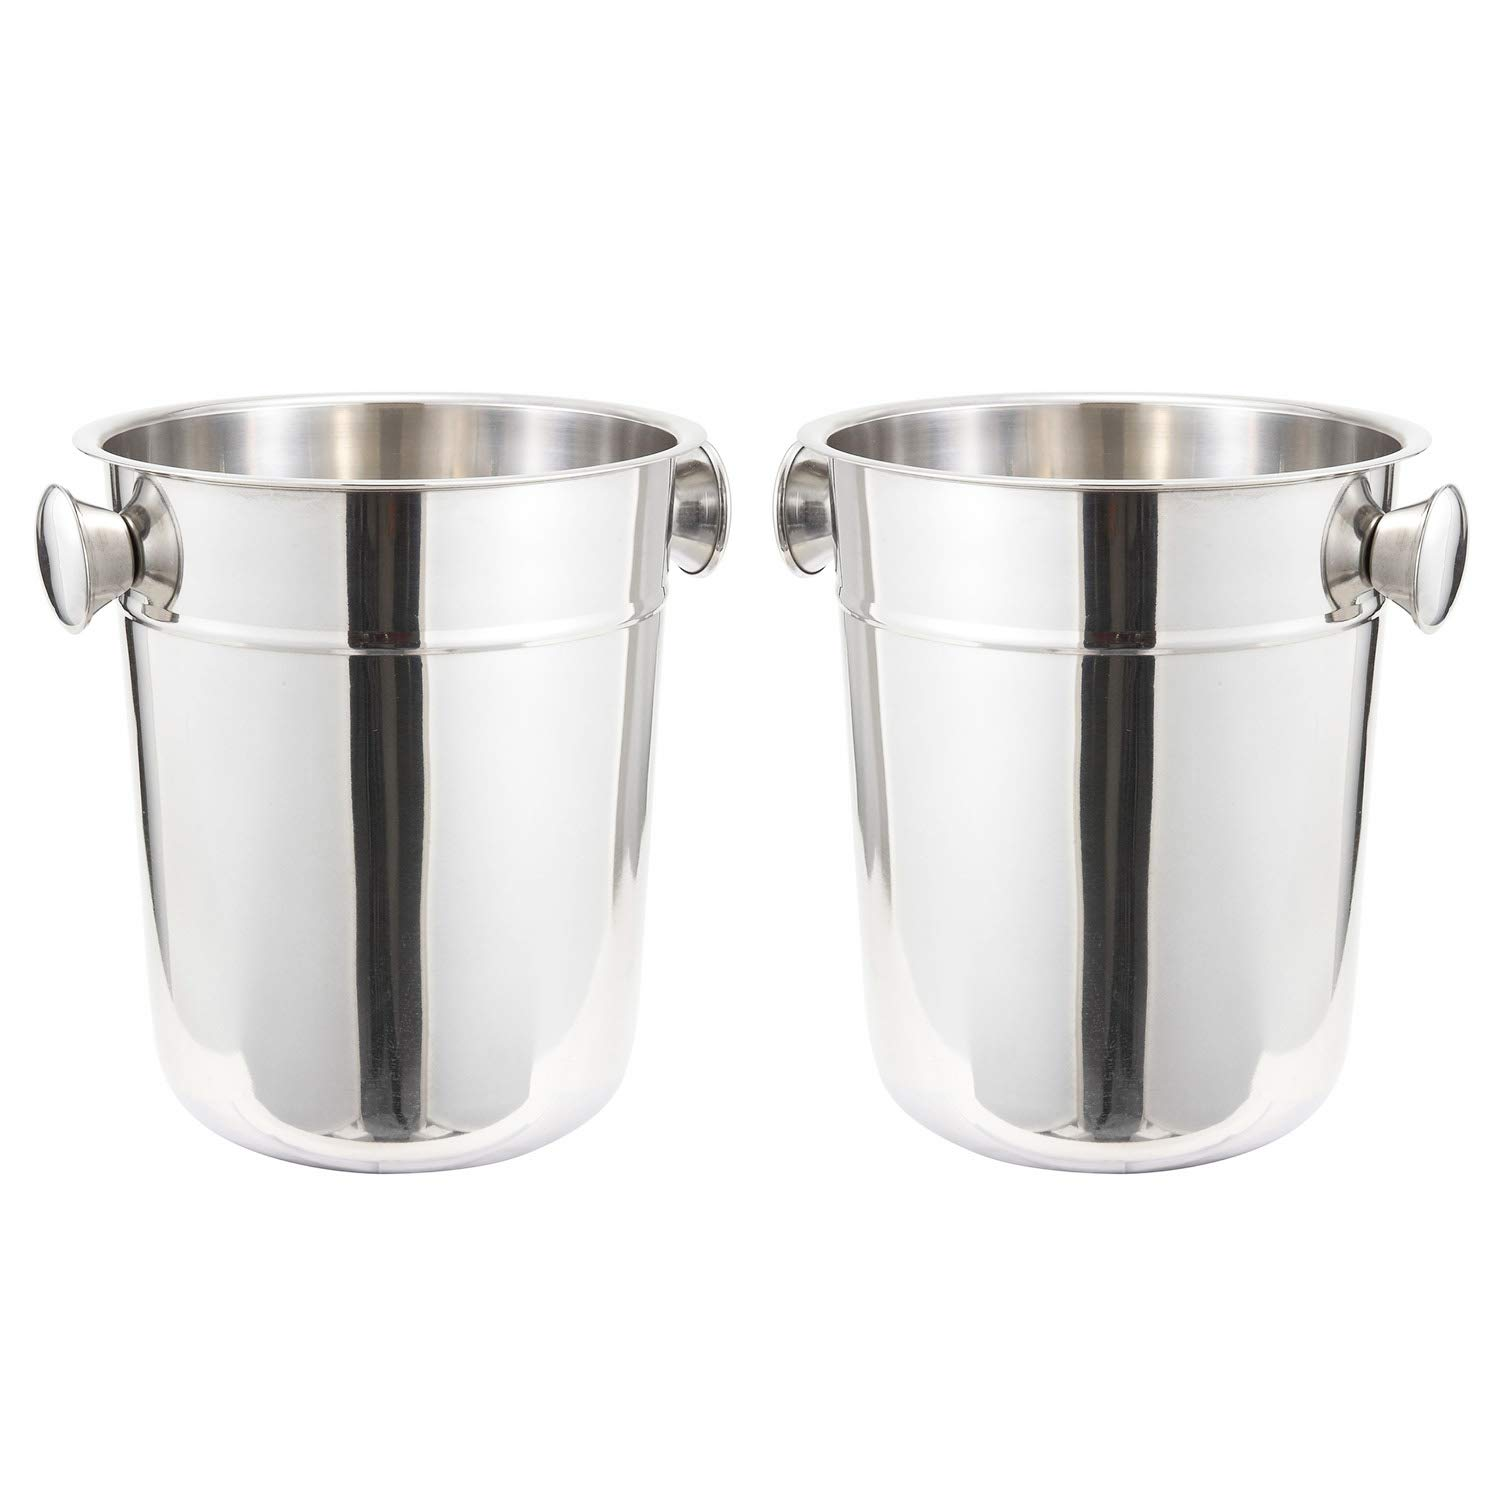 Tiger Chef 8 Quart Champagne Bucket Wine Chiller Bucket Wine Bottle Chiller Wine Cooler Bucket Ice Buckets For Parties Beer Bucket Beverage Tub Ice Tub - 2 Pack